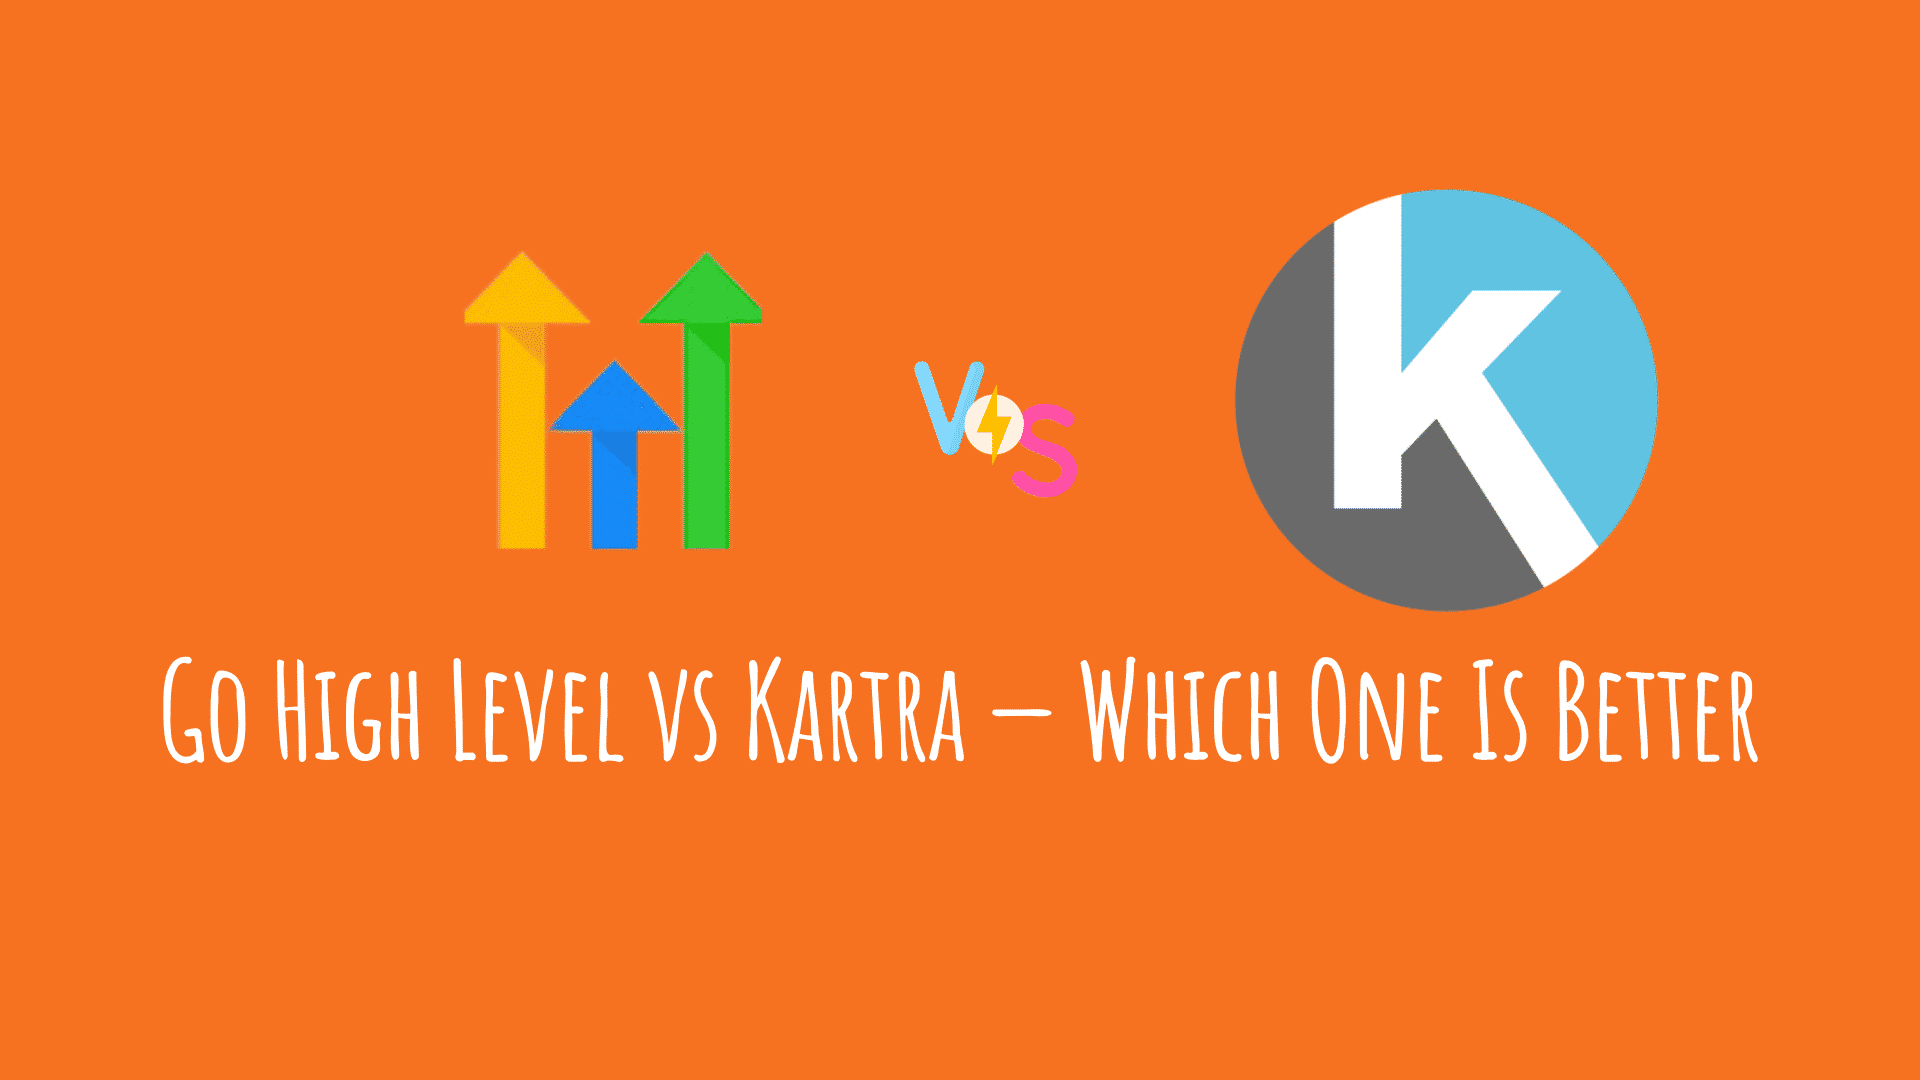 Go High Level vs Kartra — Which One Is Better